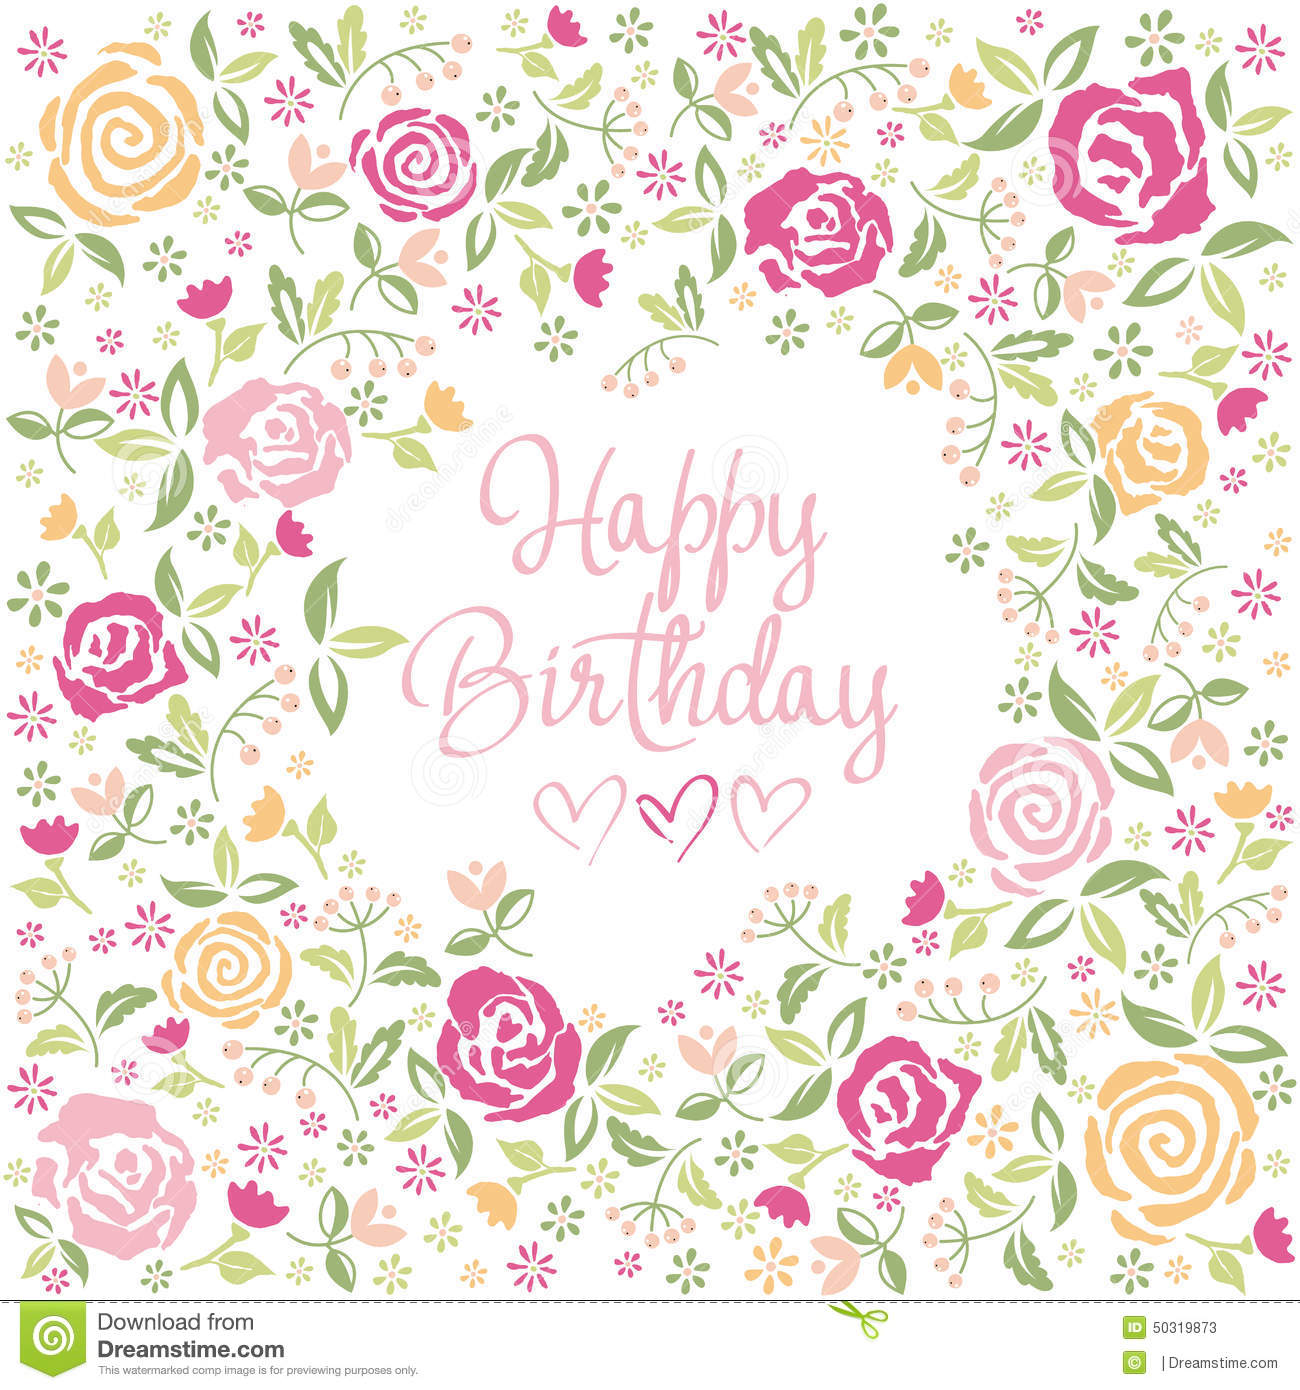 Birthday Greetings Watercolor Stock Vector Illustration Of